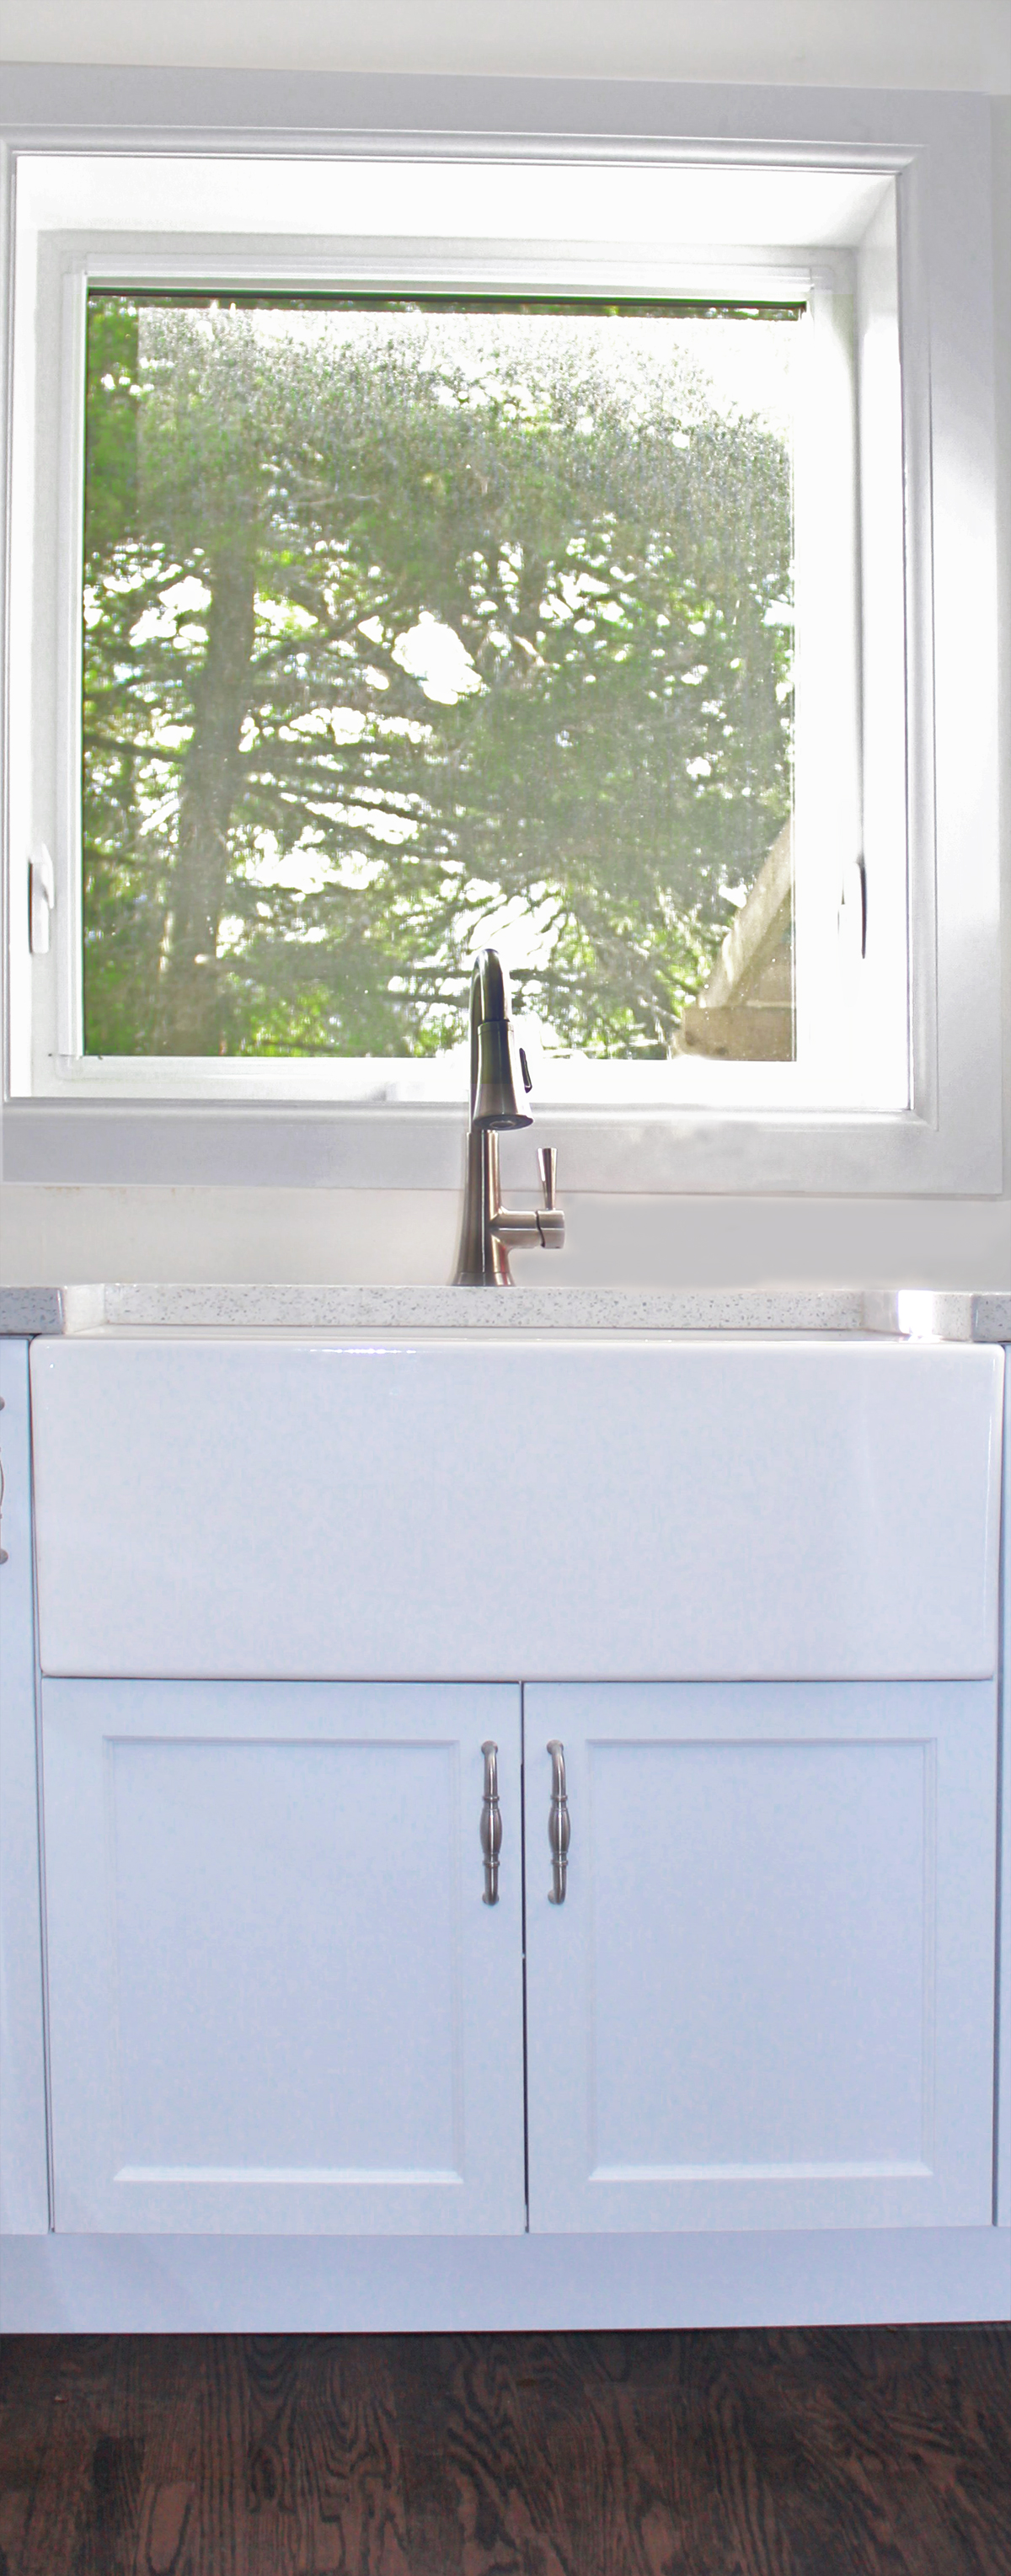 LARGE APRON FRONT SINK